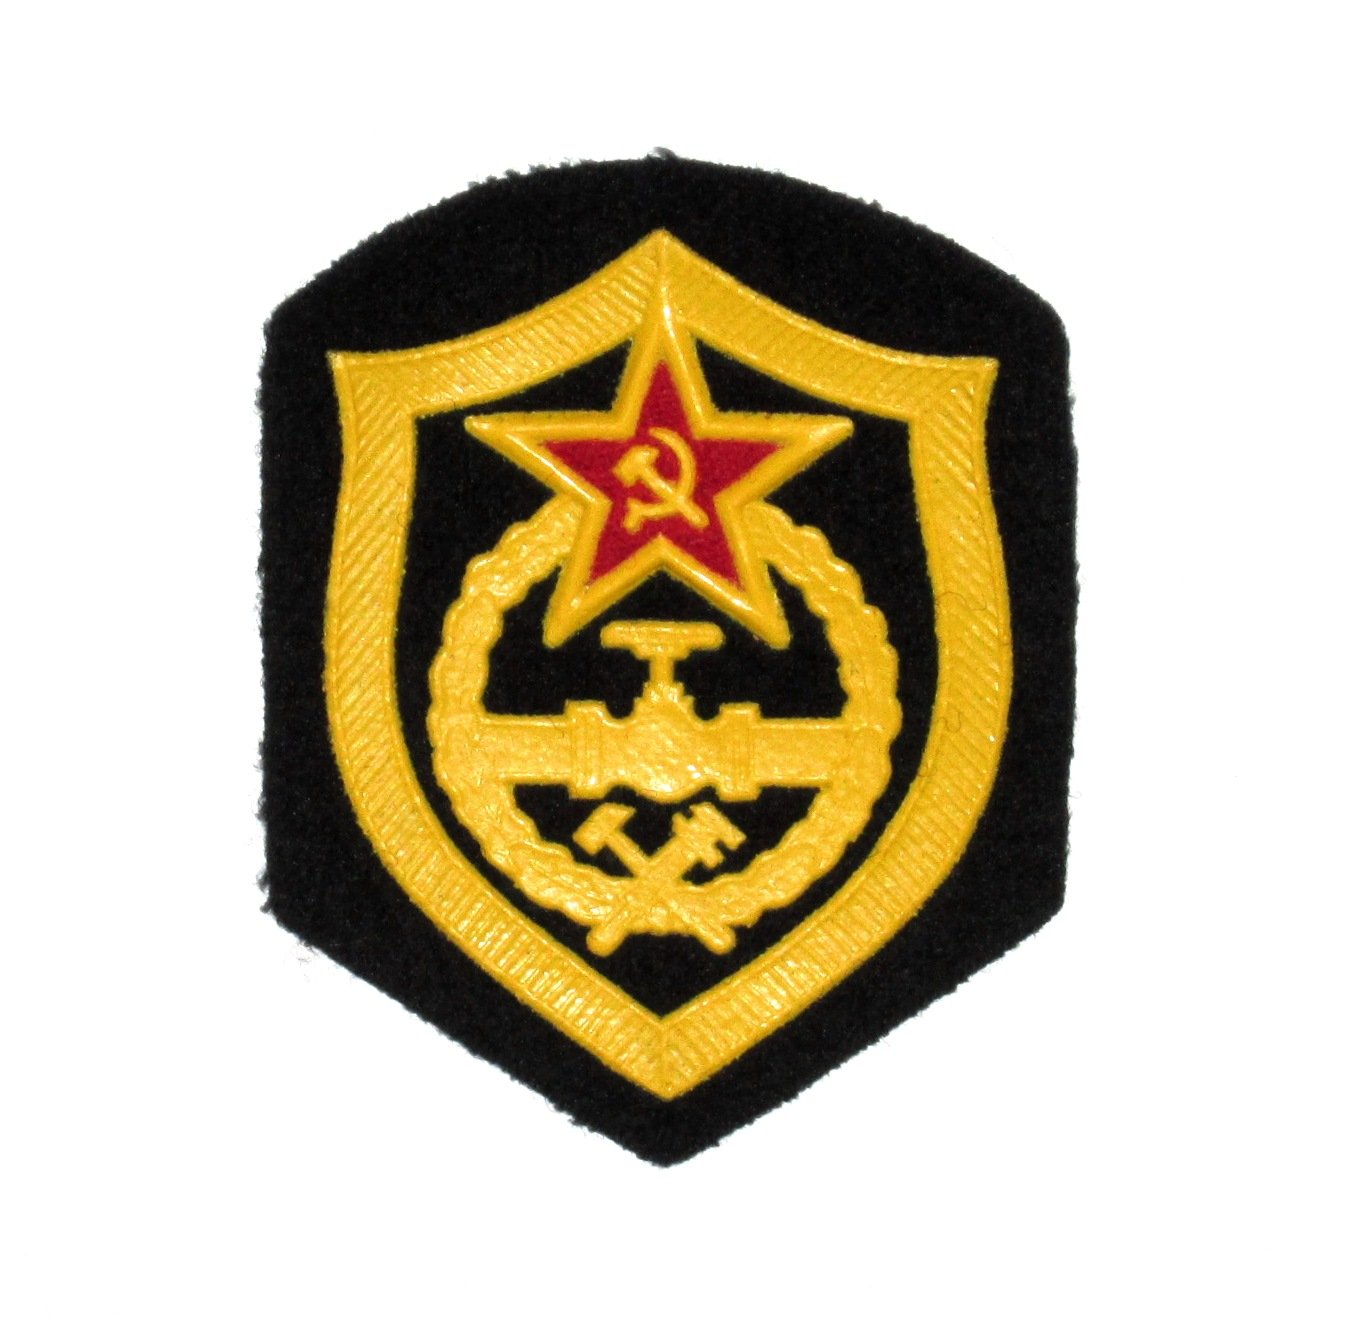 Patch Military Russia Vintage Soviet Union - Soviet Army - Pipeline Troops